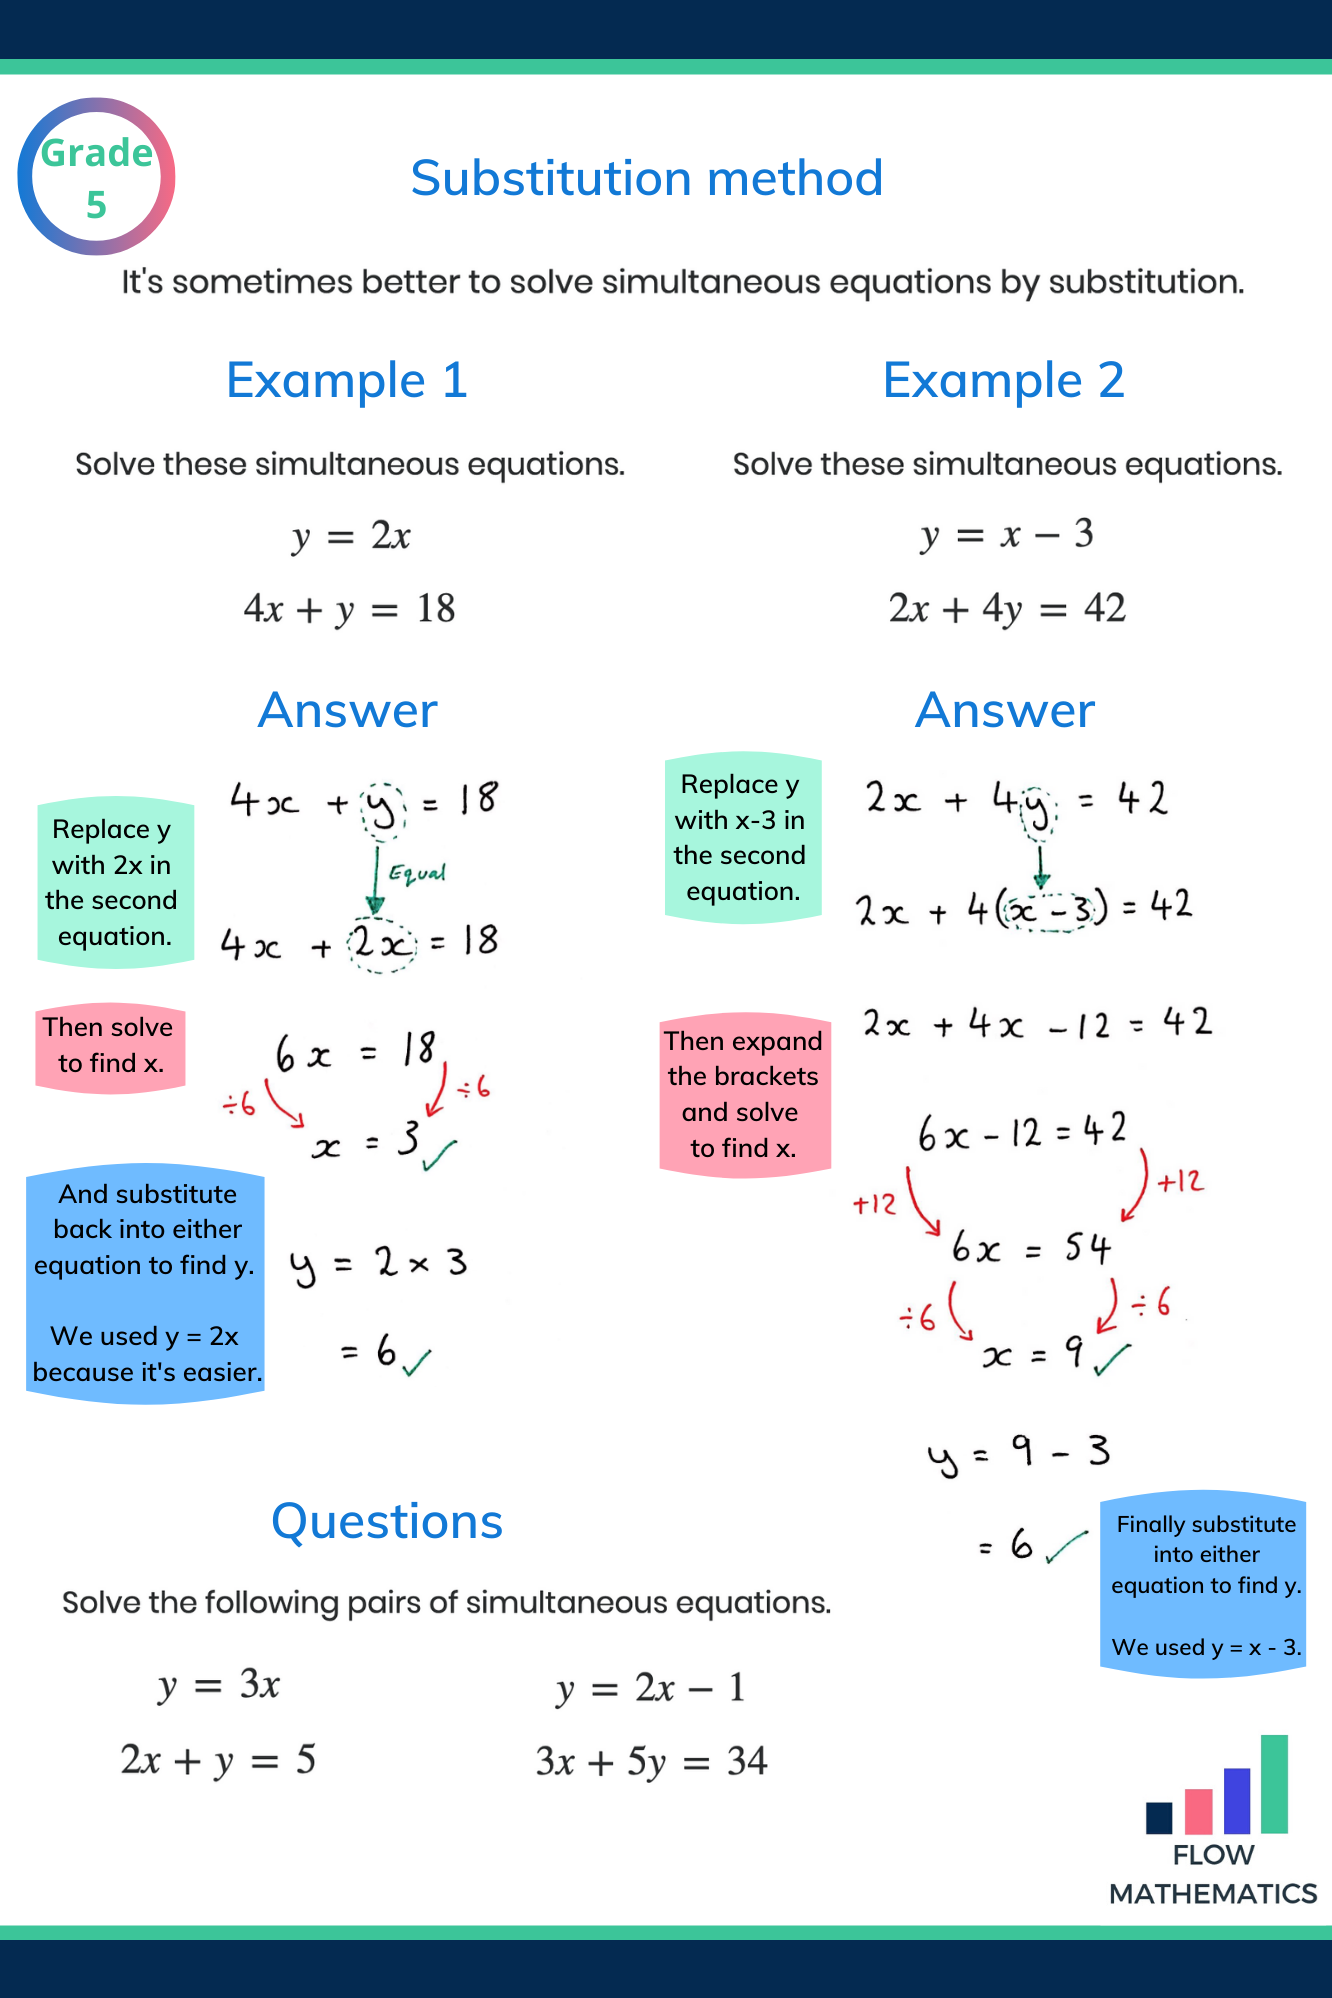 Solving Simultaneous Equations By Substitution Worksheet Printable Worksheets And Activities For Teachers Parents Tutors And Homeschool Families